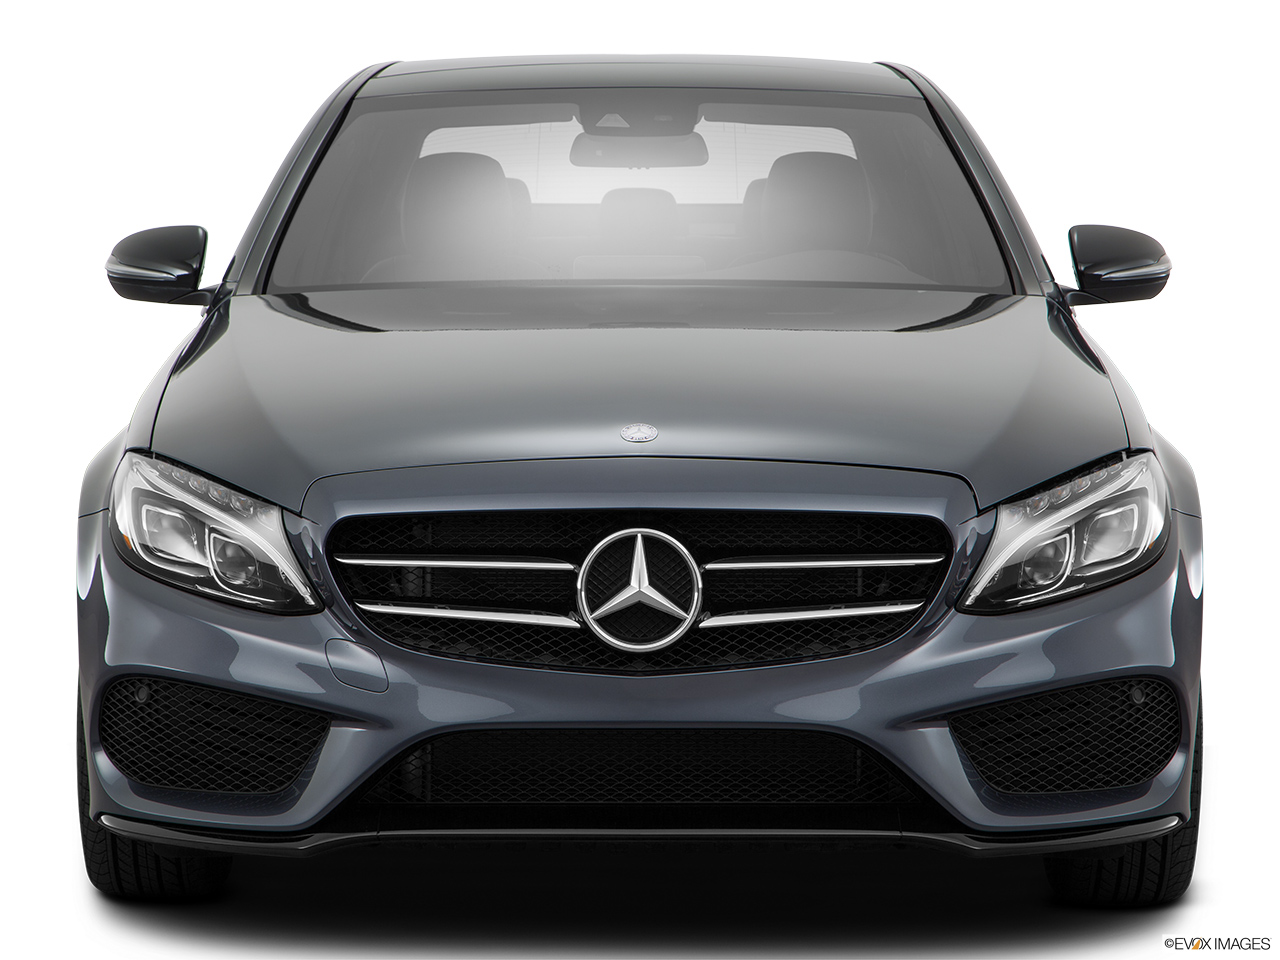 mercedes benz c class 2016 c 250 in qatar new car prices. Black Bedroom Furniture Sets. Home Design Ideas